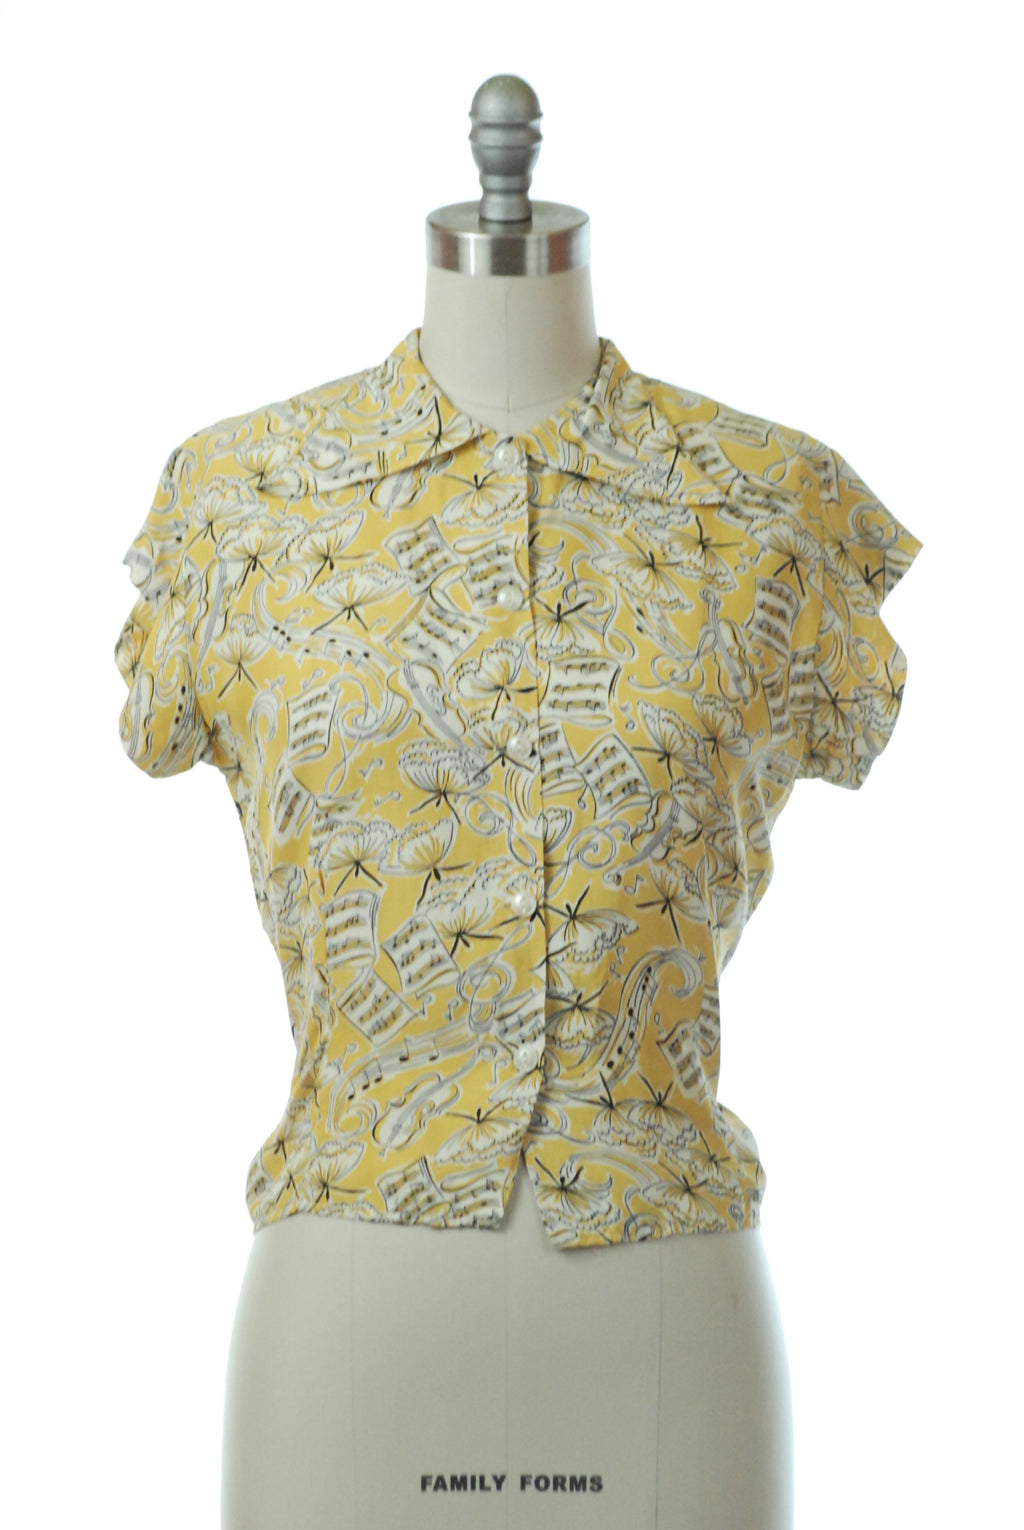 Charming late 1940s Novelty Print Blouse with Music and Ballet Dancers